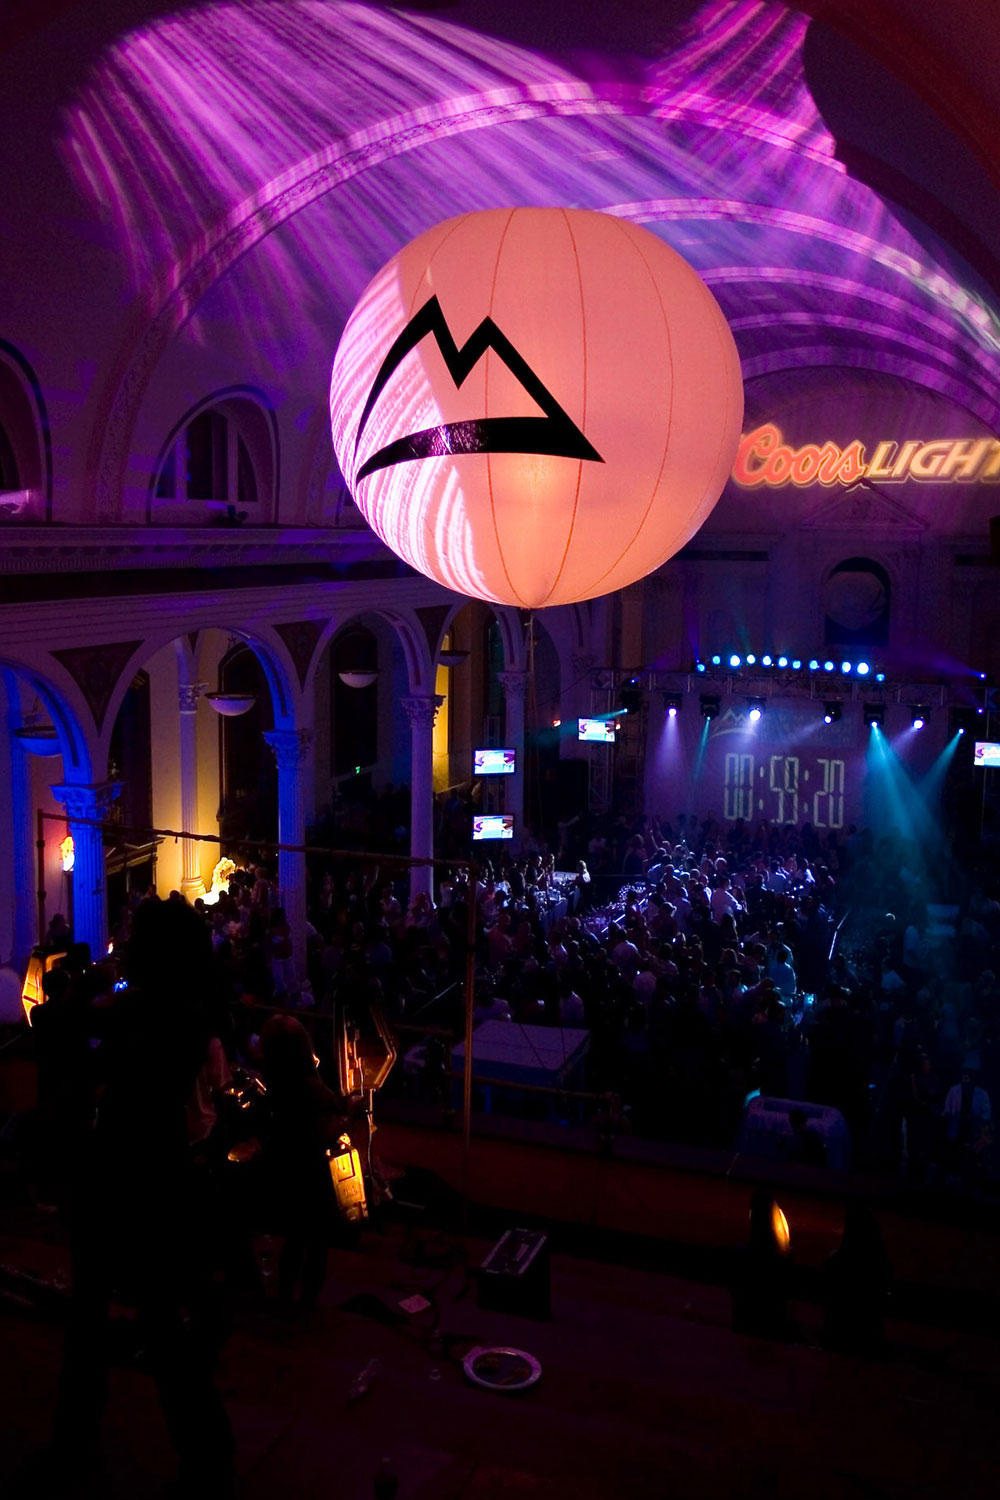 toast-coors-light-decorations-ballroom-party-10twelve.jpg